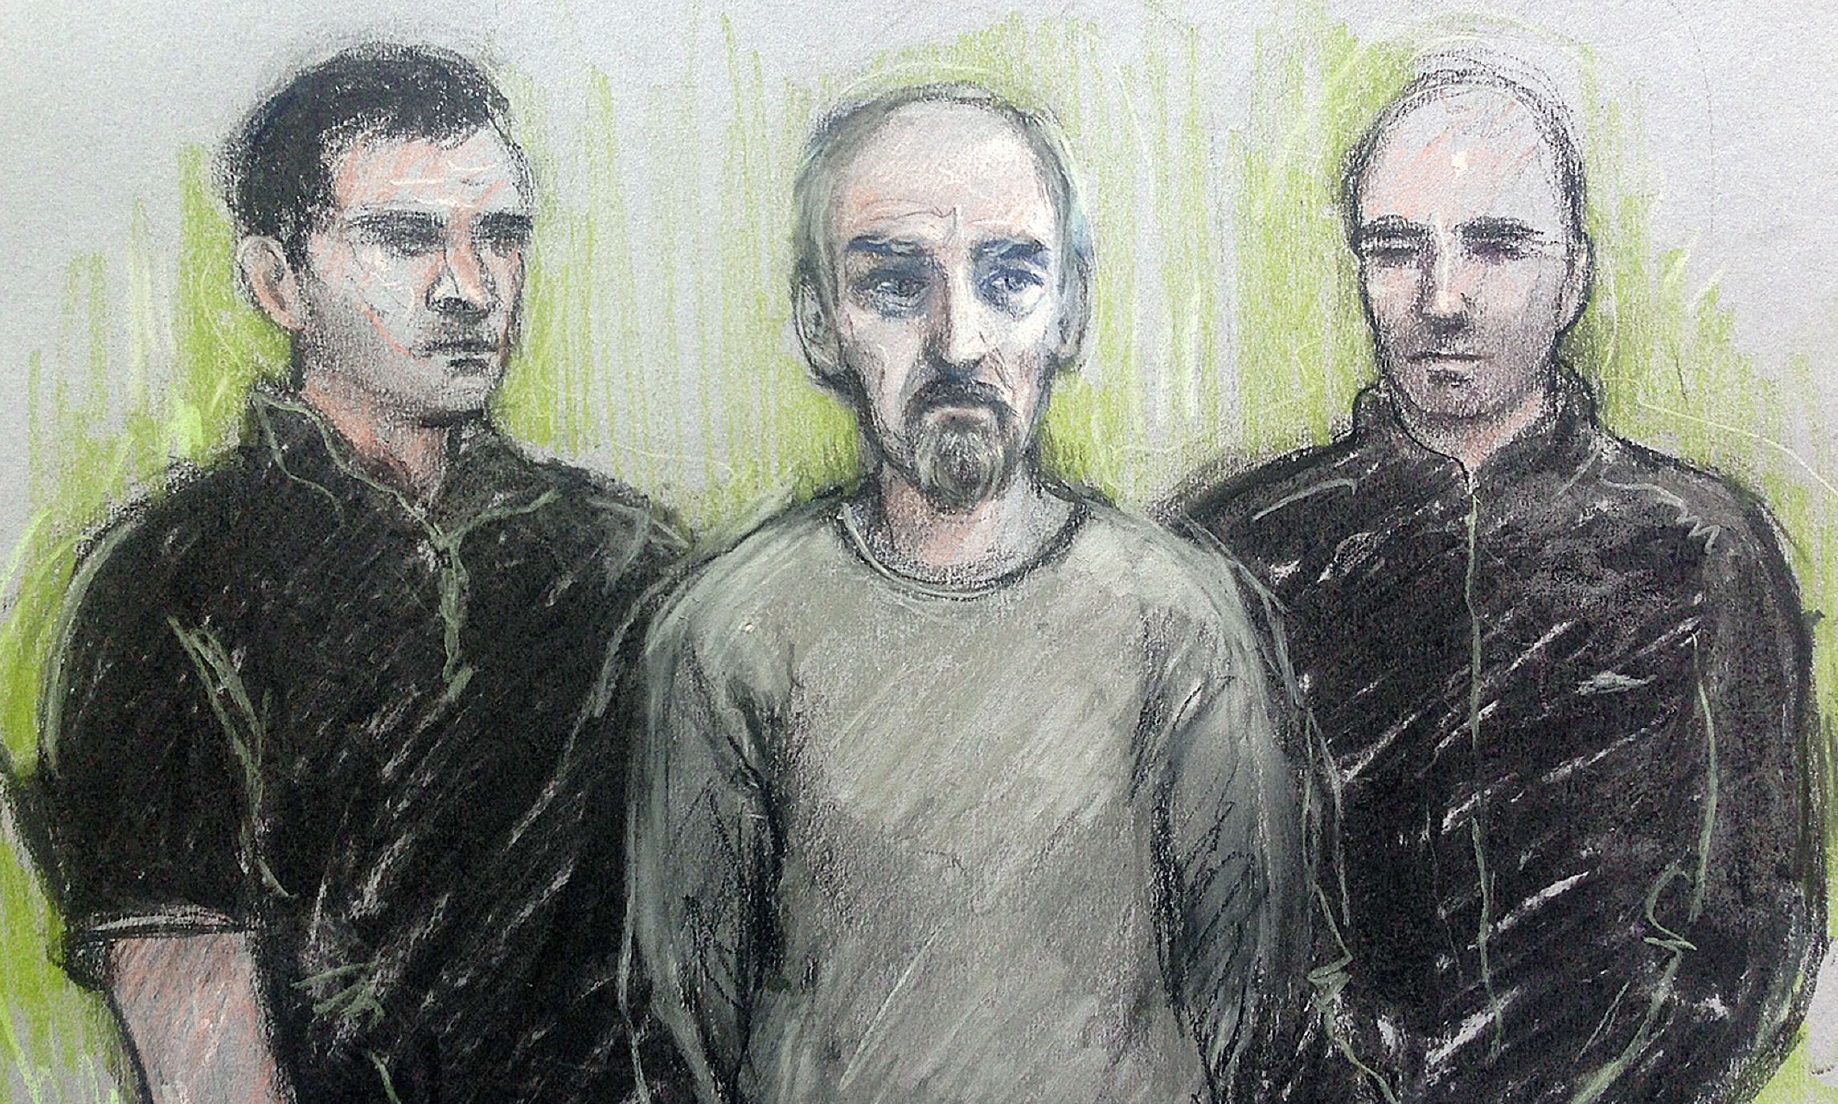 An artist's sketch of Thomas Mair at Westminster Magistrates' Court.